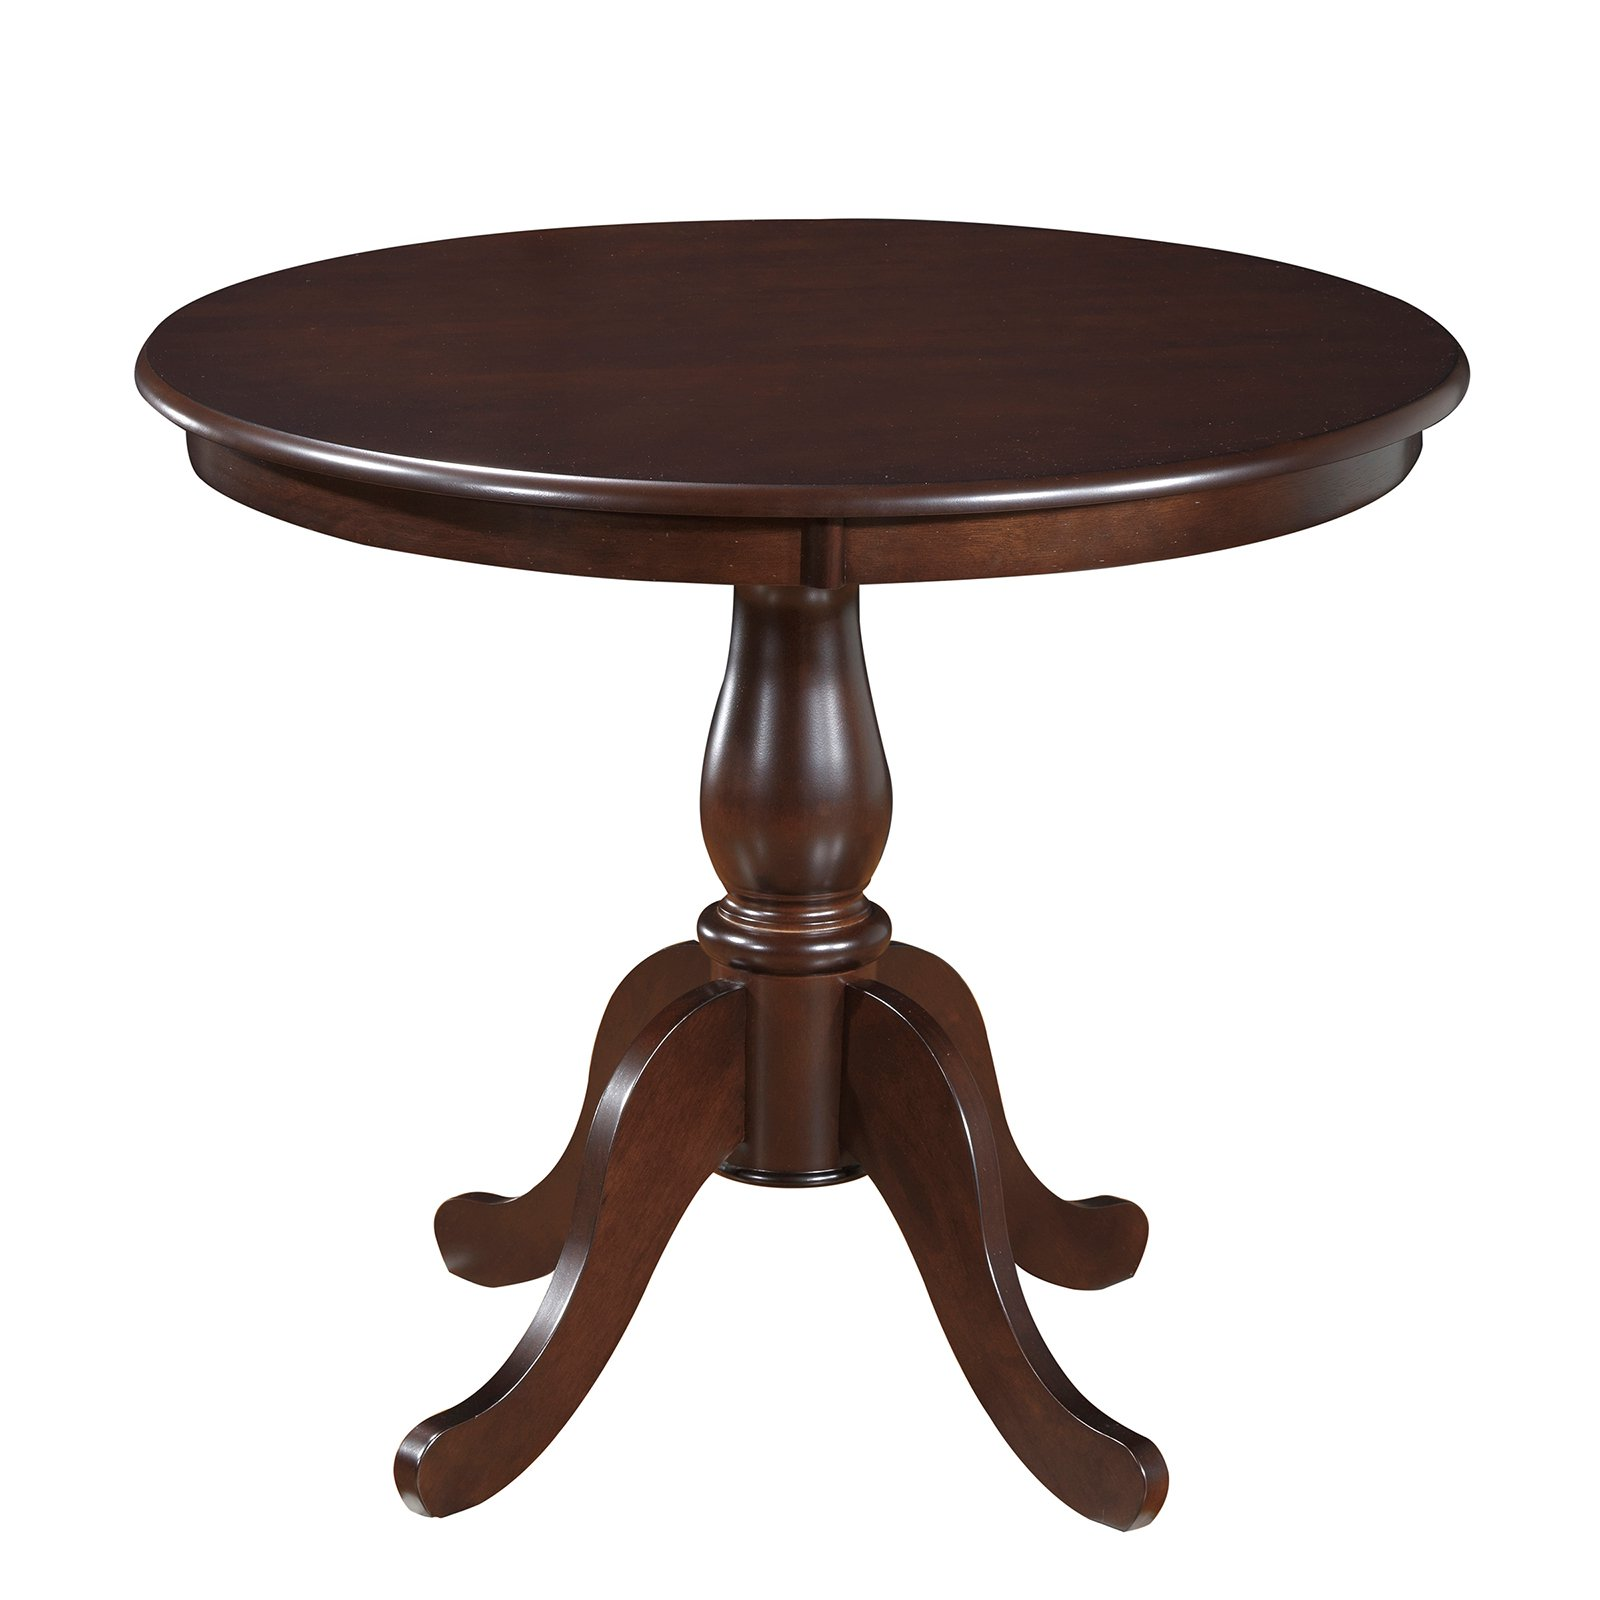 Carolina Chair and Table Winston 36 in. Round Pedestal Dining Table